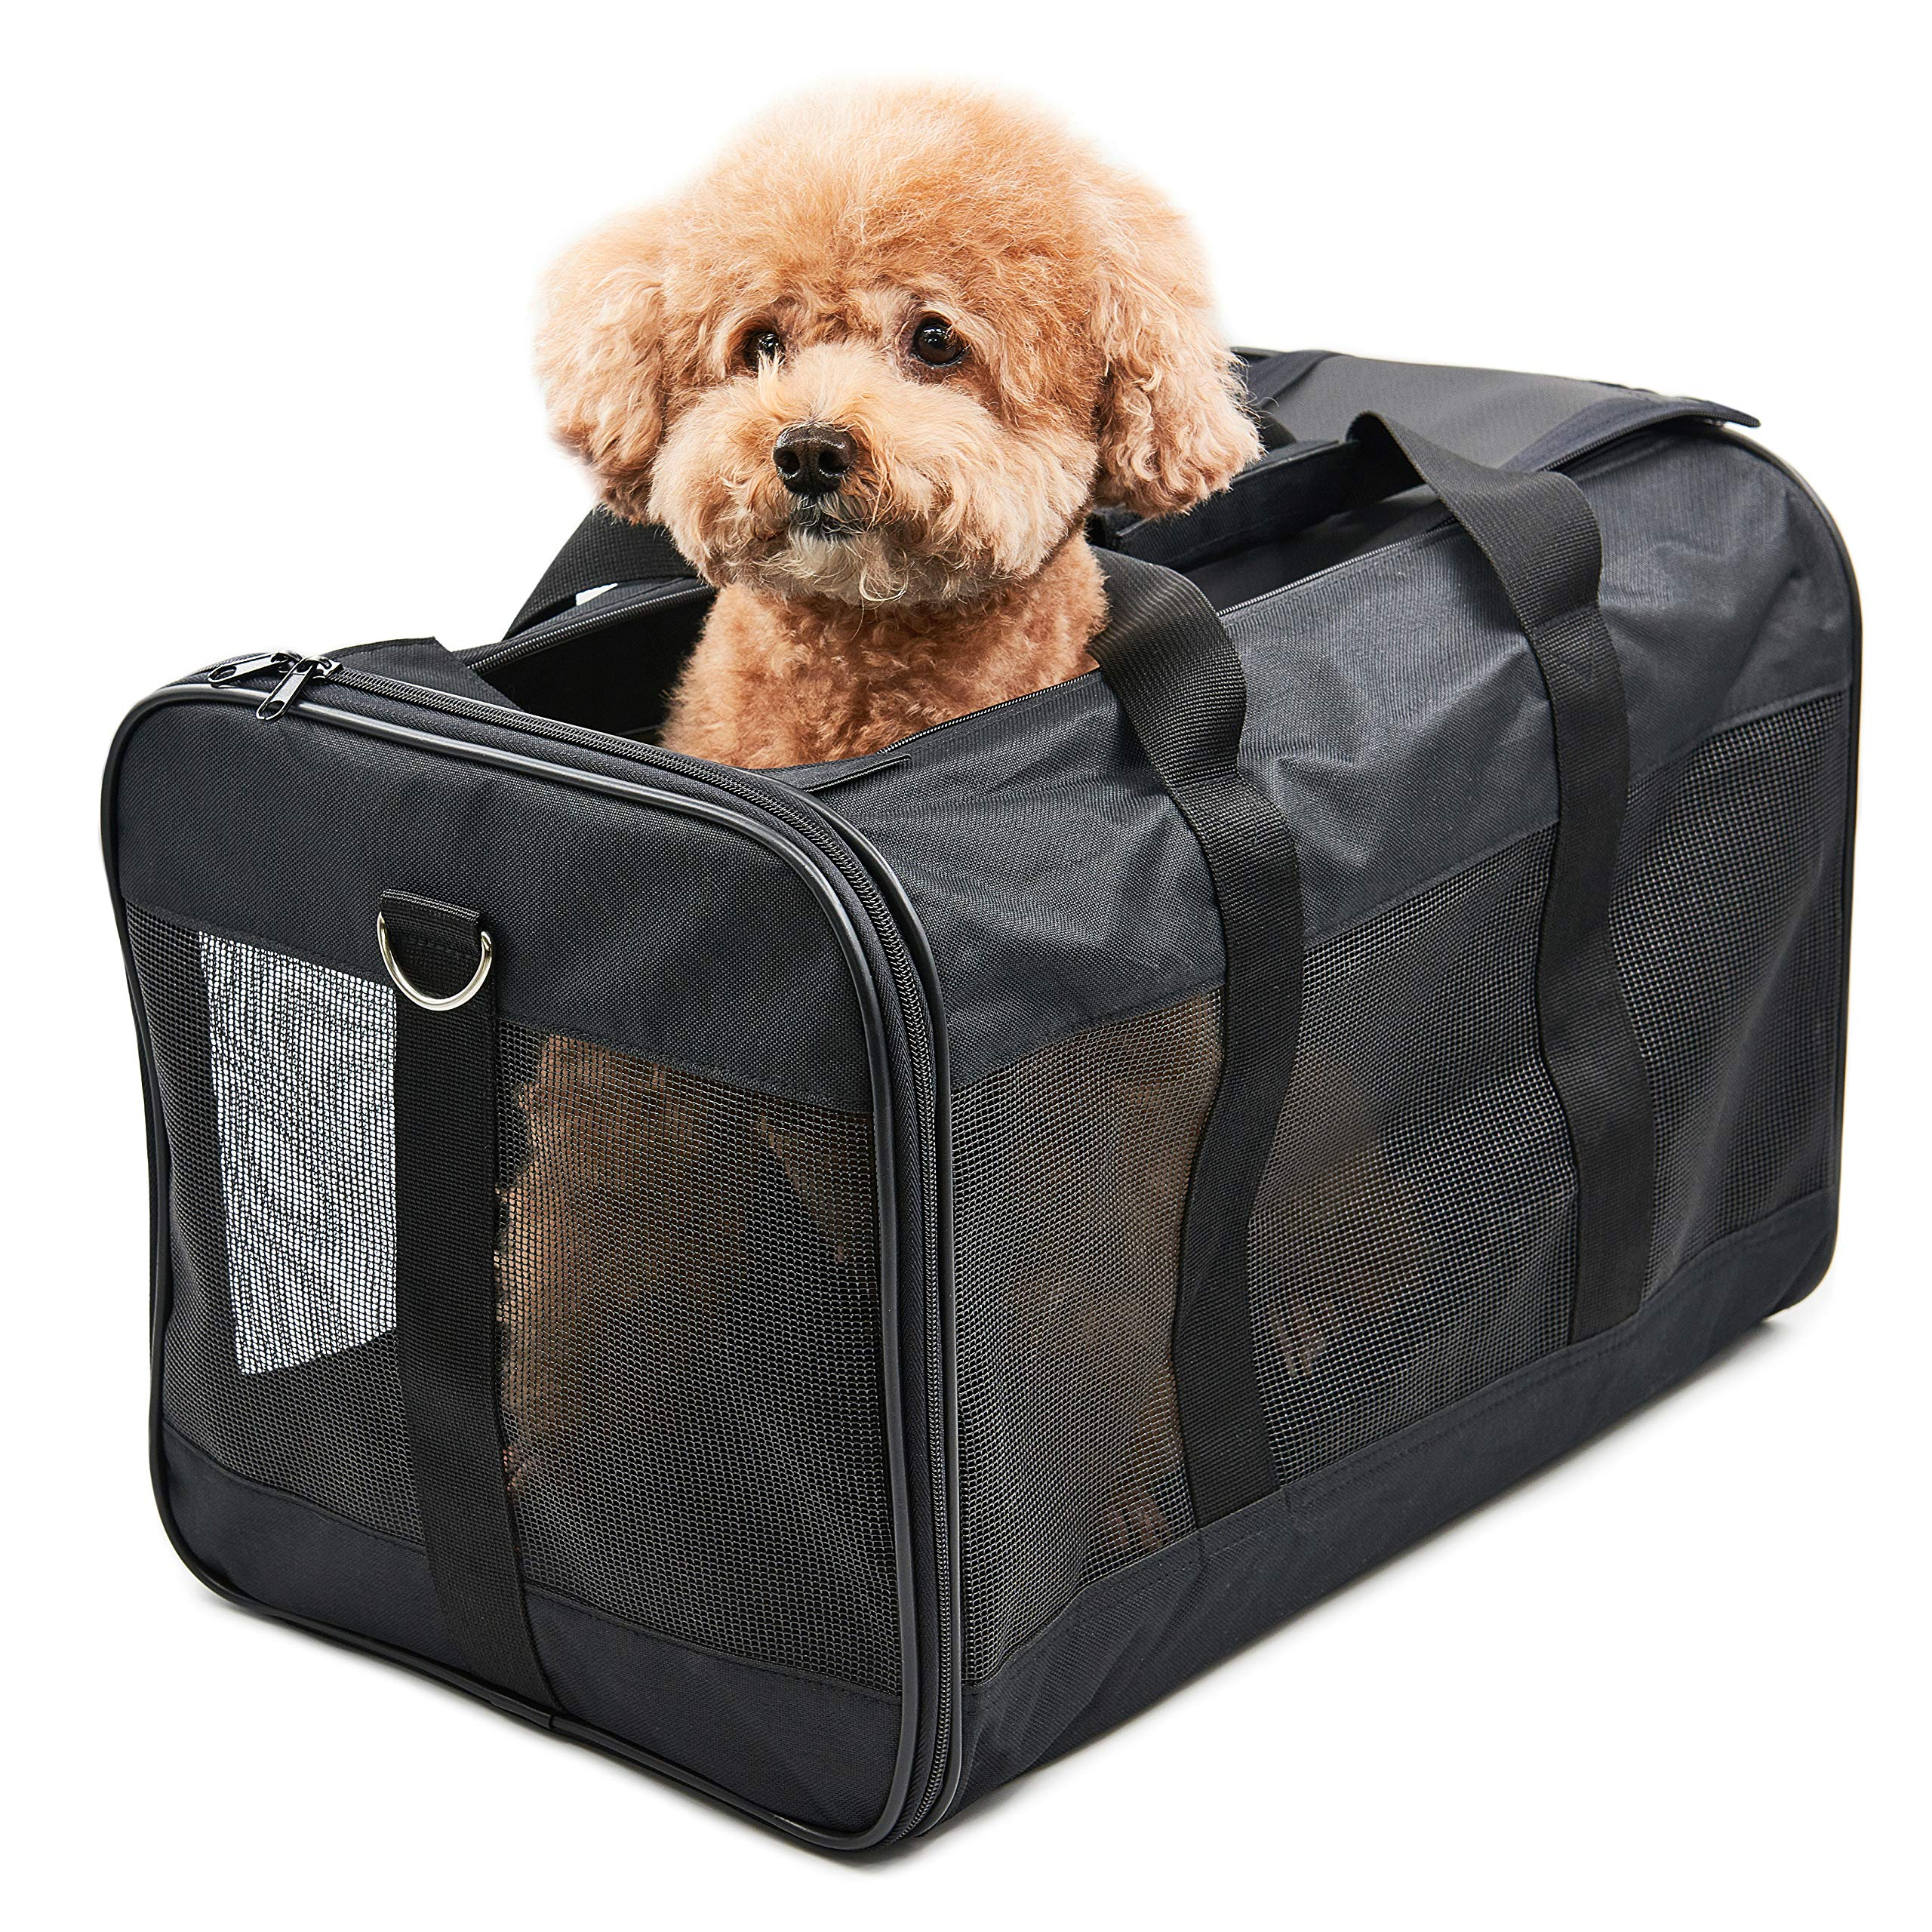 HITCH Pet Travel Carrier Soft Sided Portable Bag for Cats, Small Dogs, Kittens or Puppies, Collapsible, Durable, Airline Approved, Travel Friendly, Carry Your Pet with You Safely and Comfortably (L)